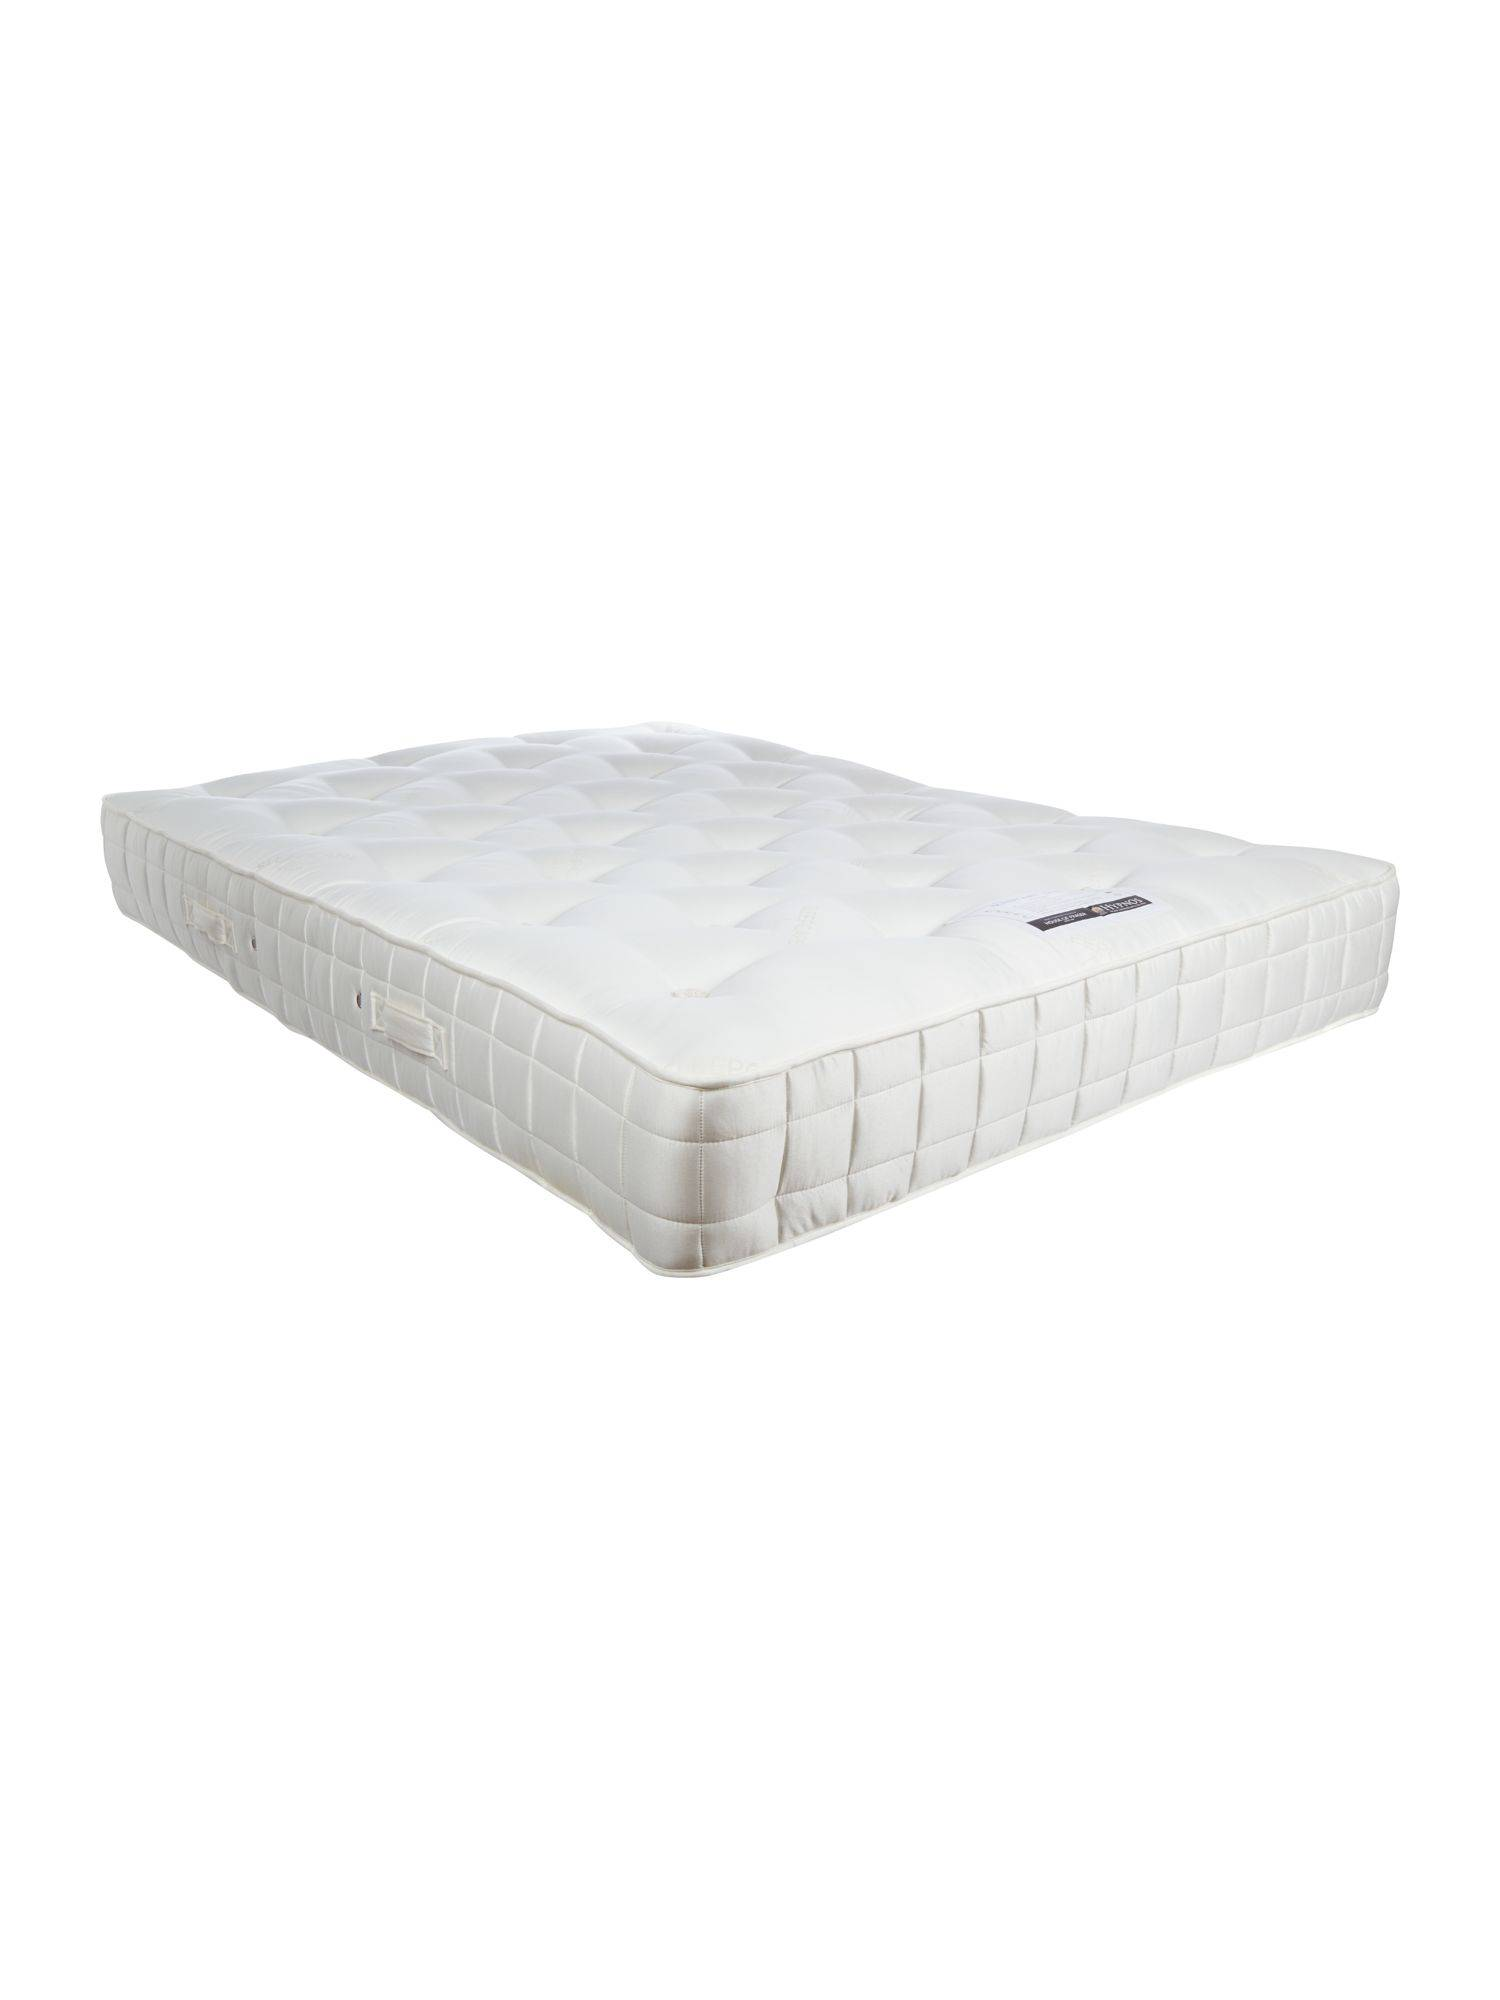 LINEA Home by Hypnos Sleepcare 1200 king mattress medium tension